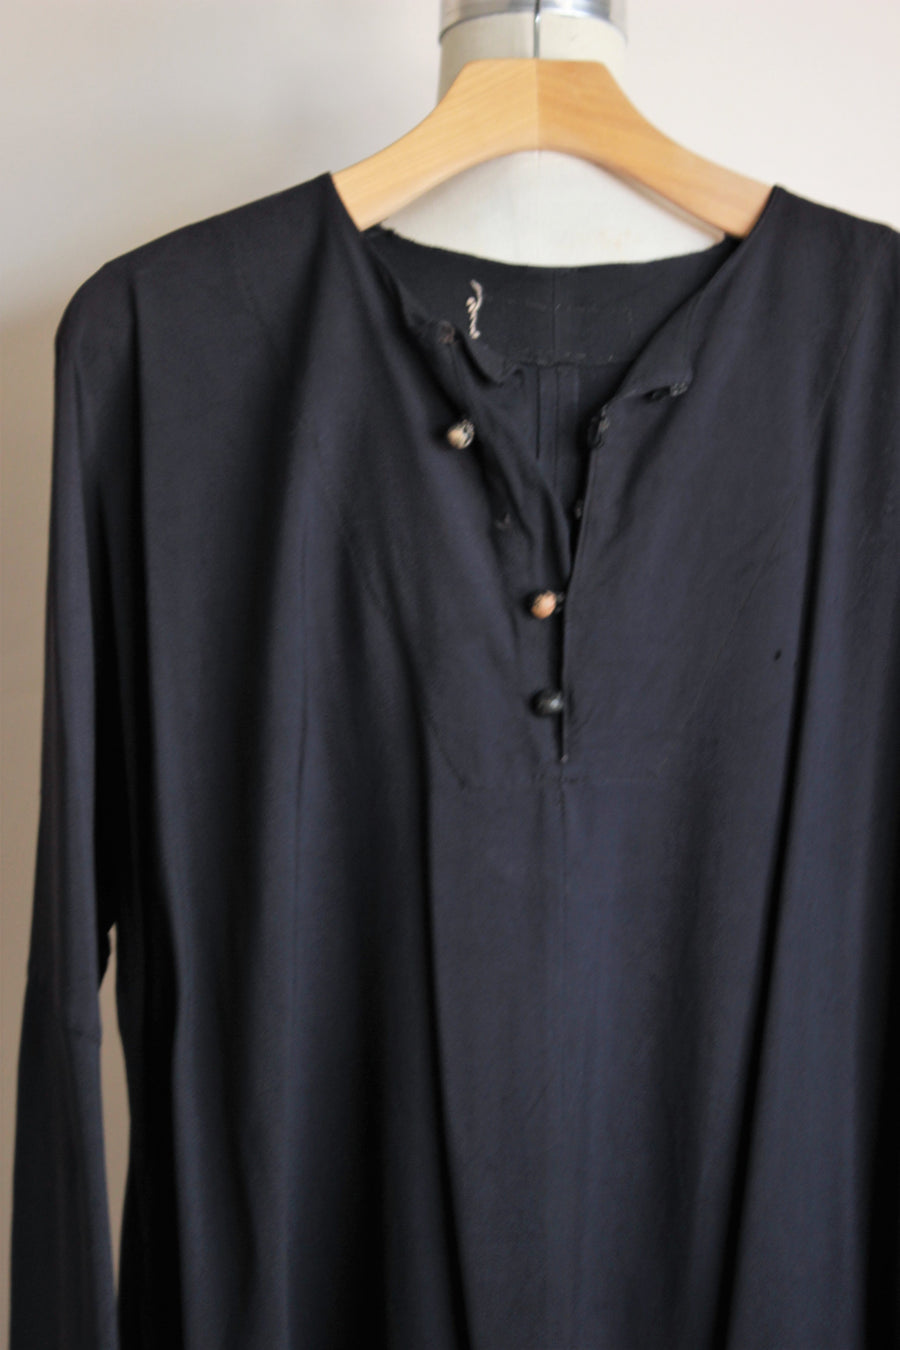 Vintage 1940s Men's Long Black Shirt / Hollywood Costume